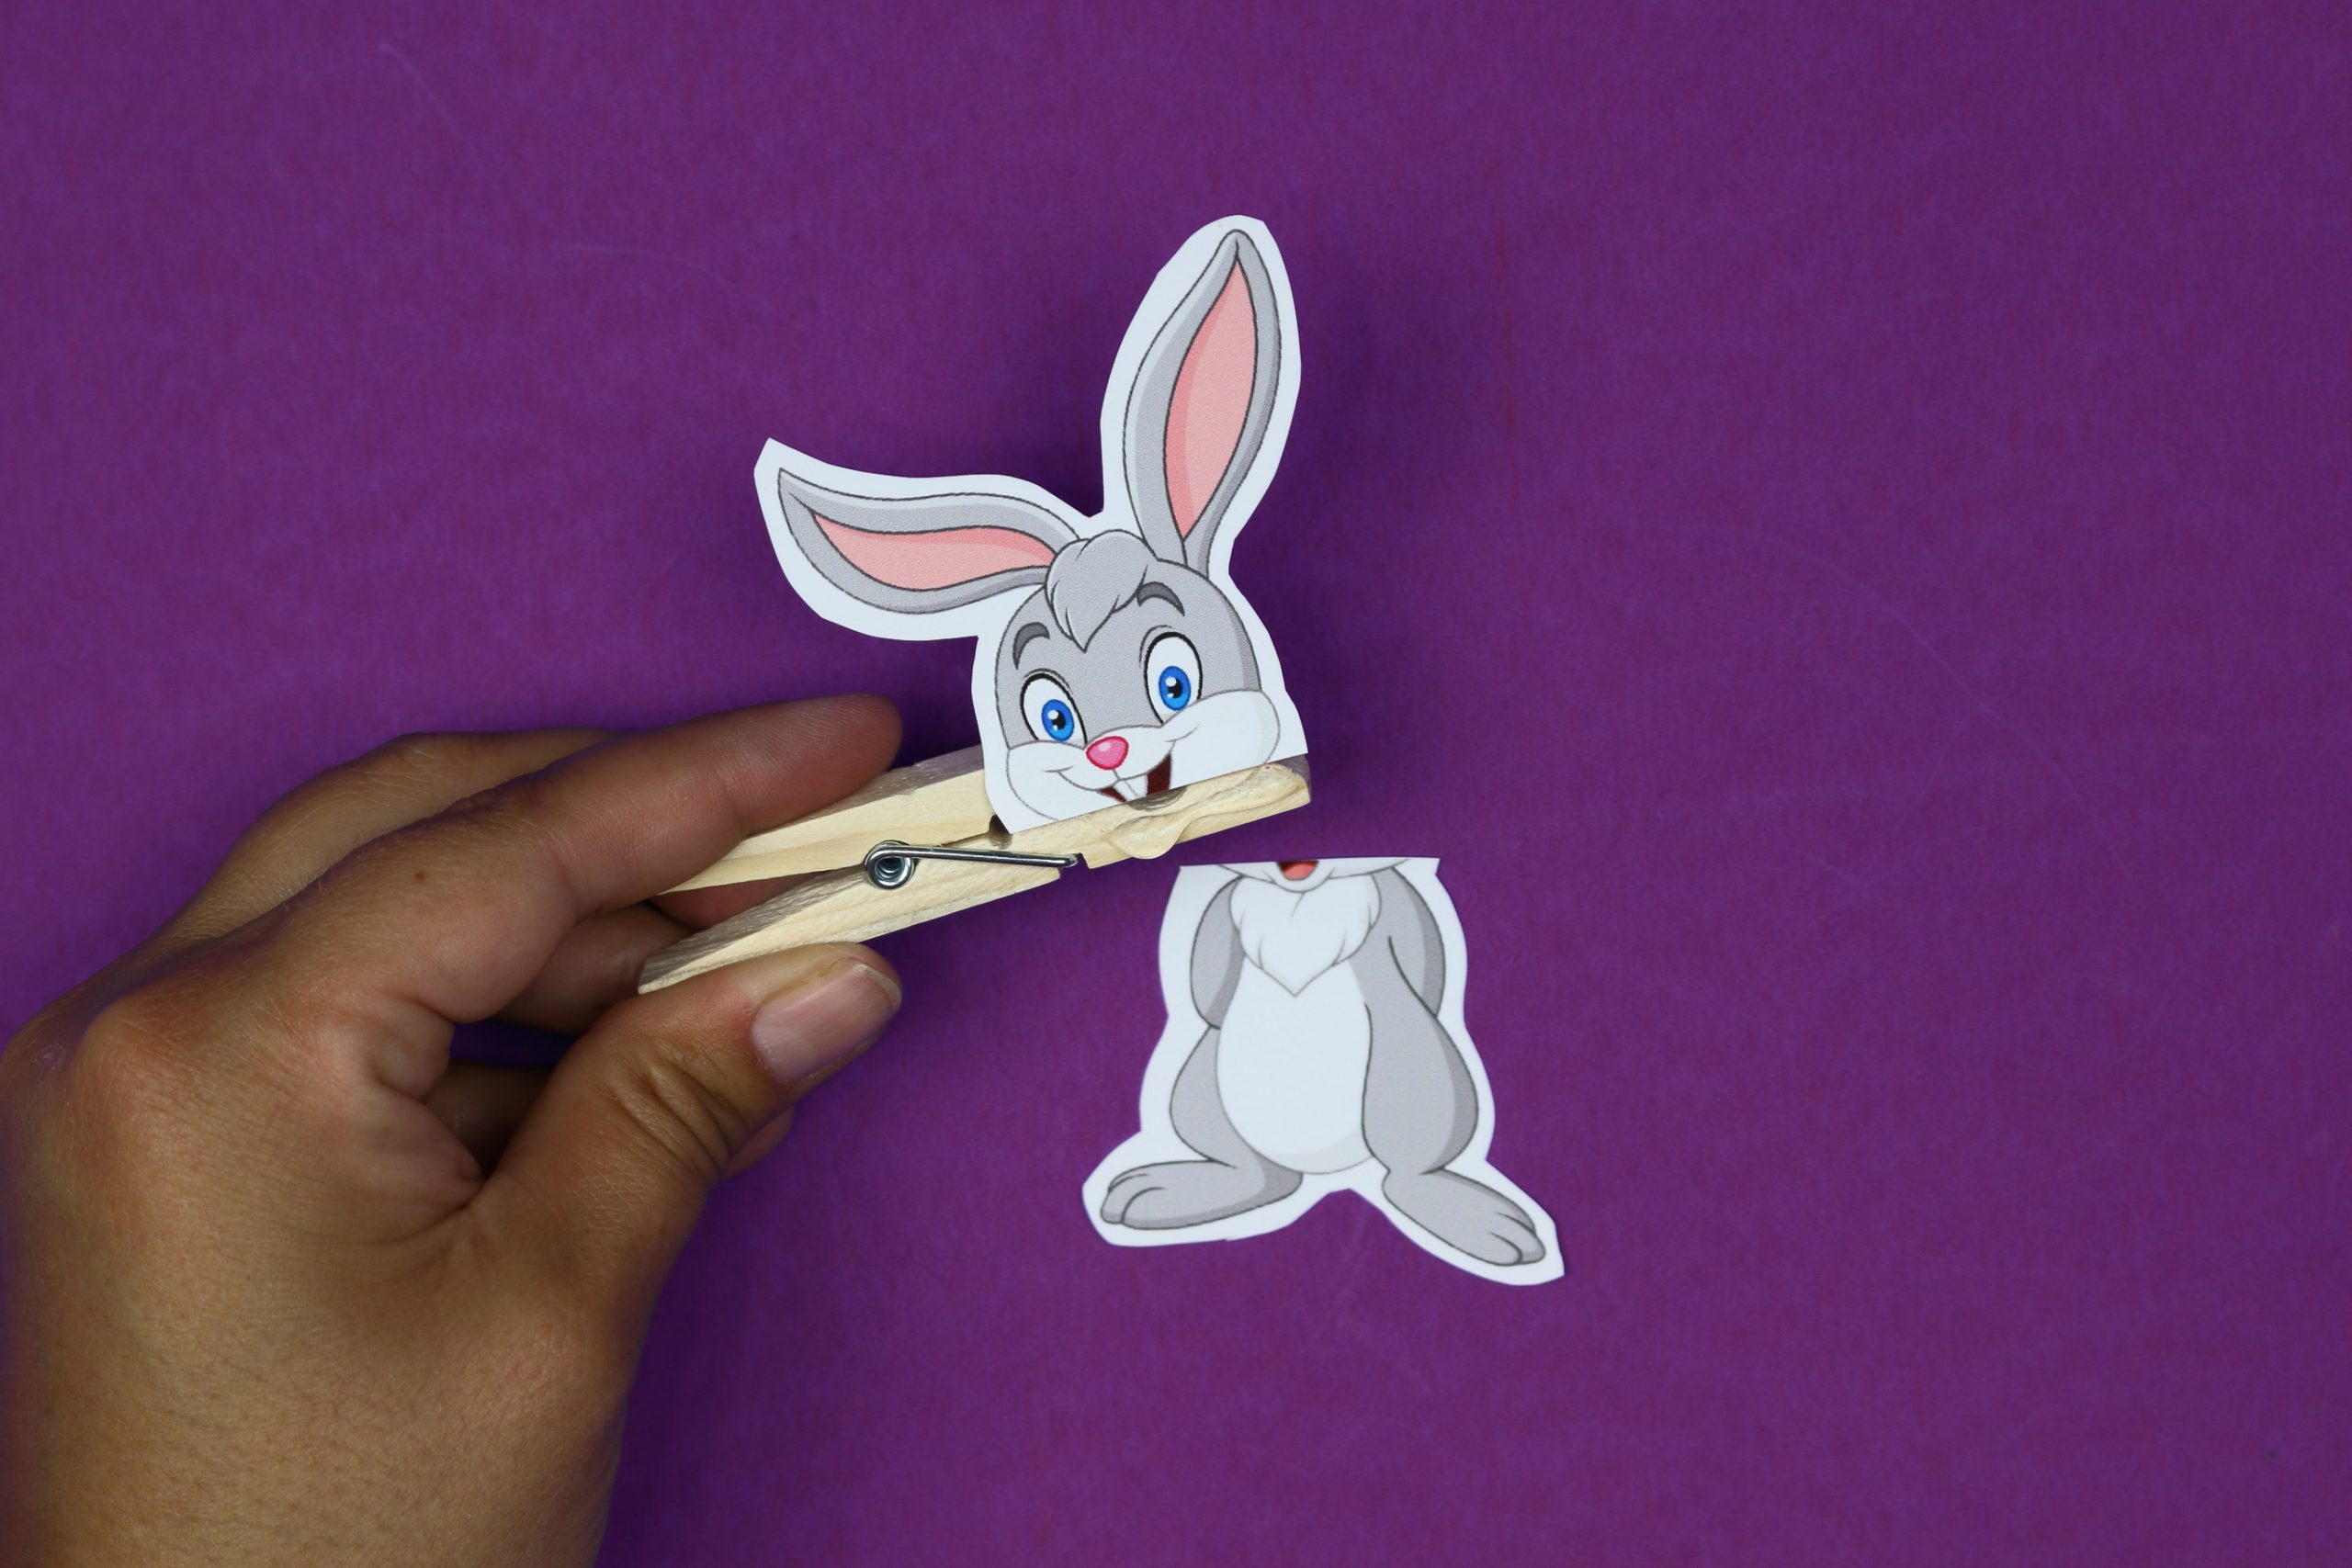 bunny printable glued to a clothespin on a purple background